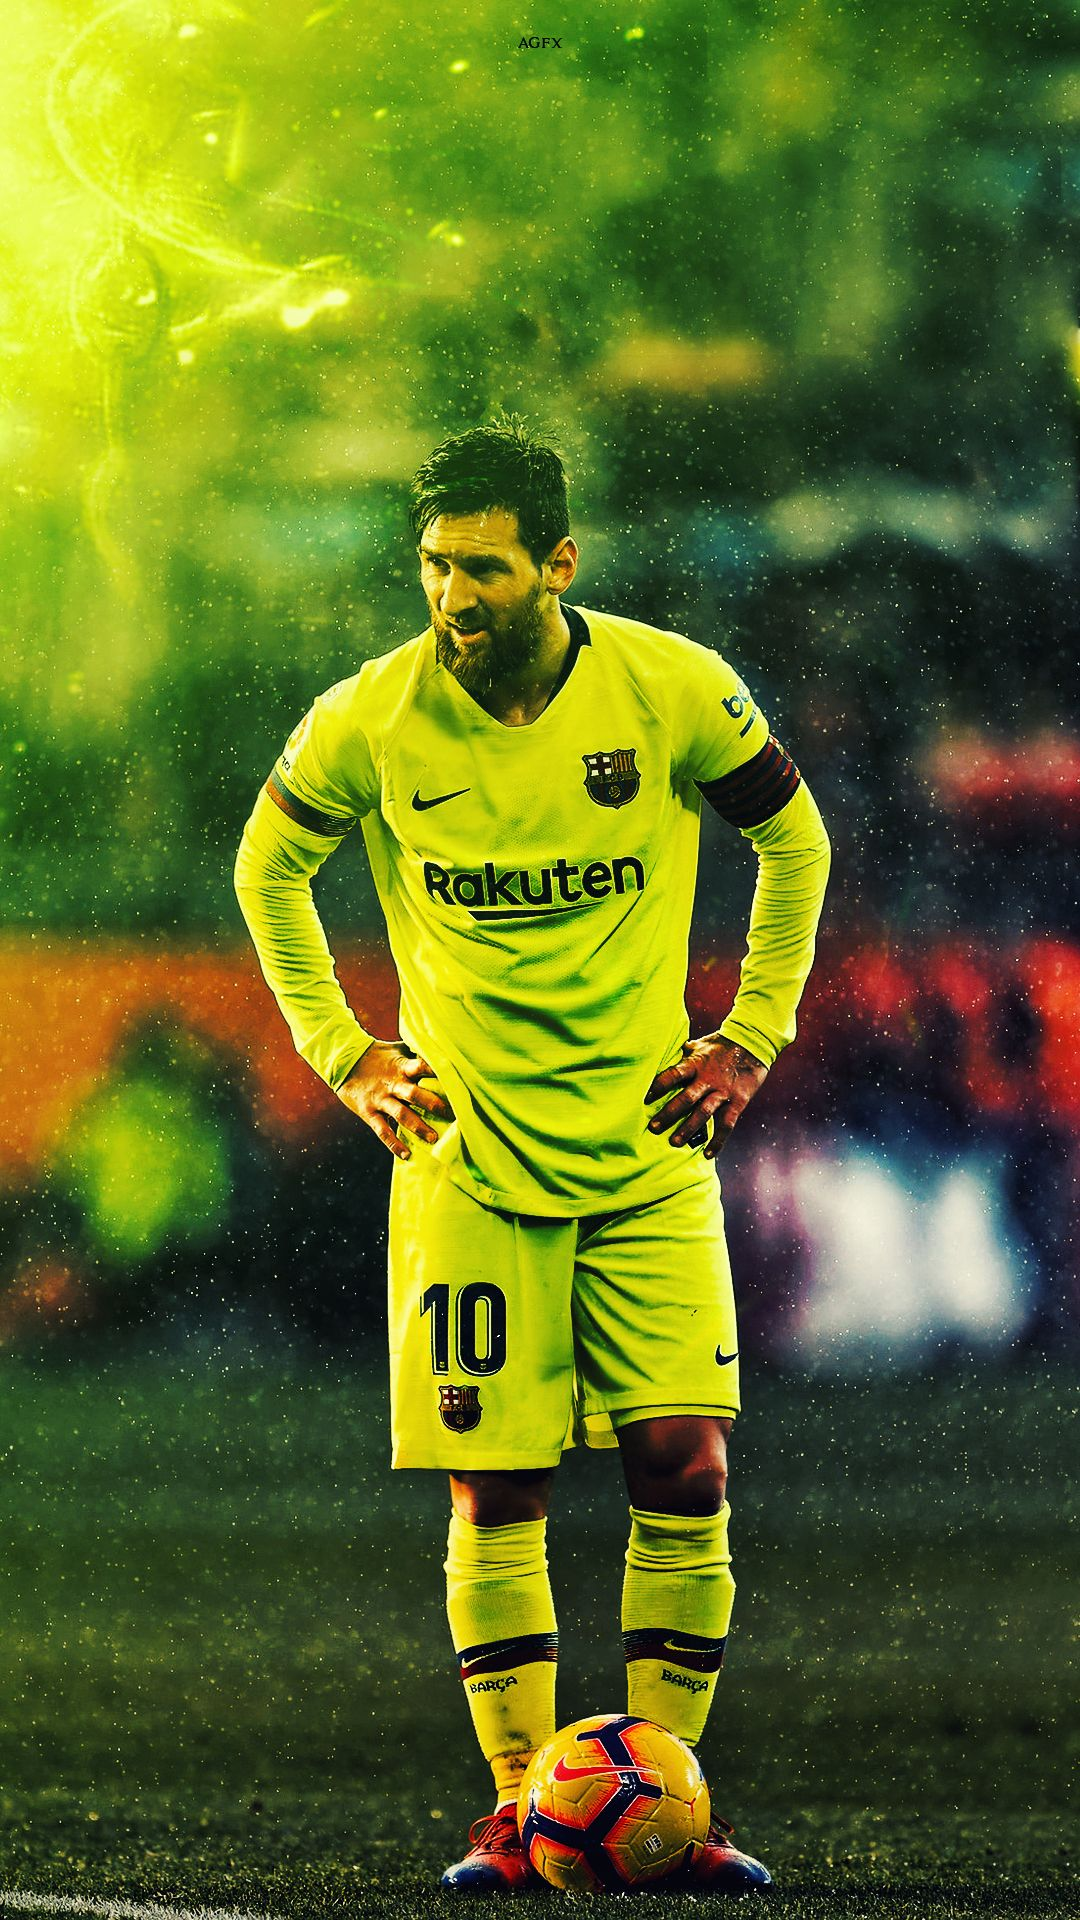 Agfx Designs On Twitter Lionel Messi Lionel Messi Wallpapers Messi Soccer